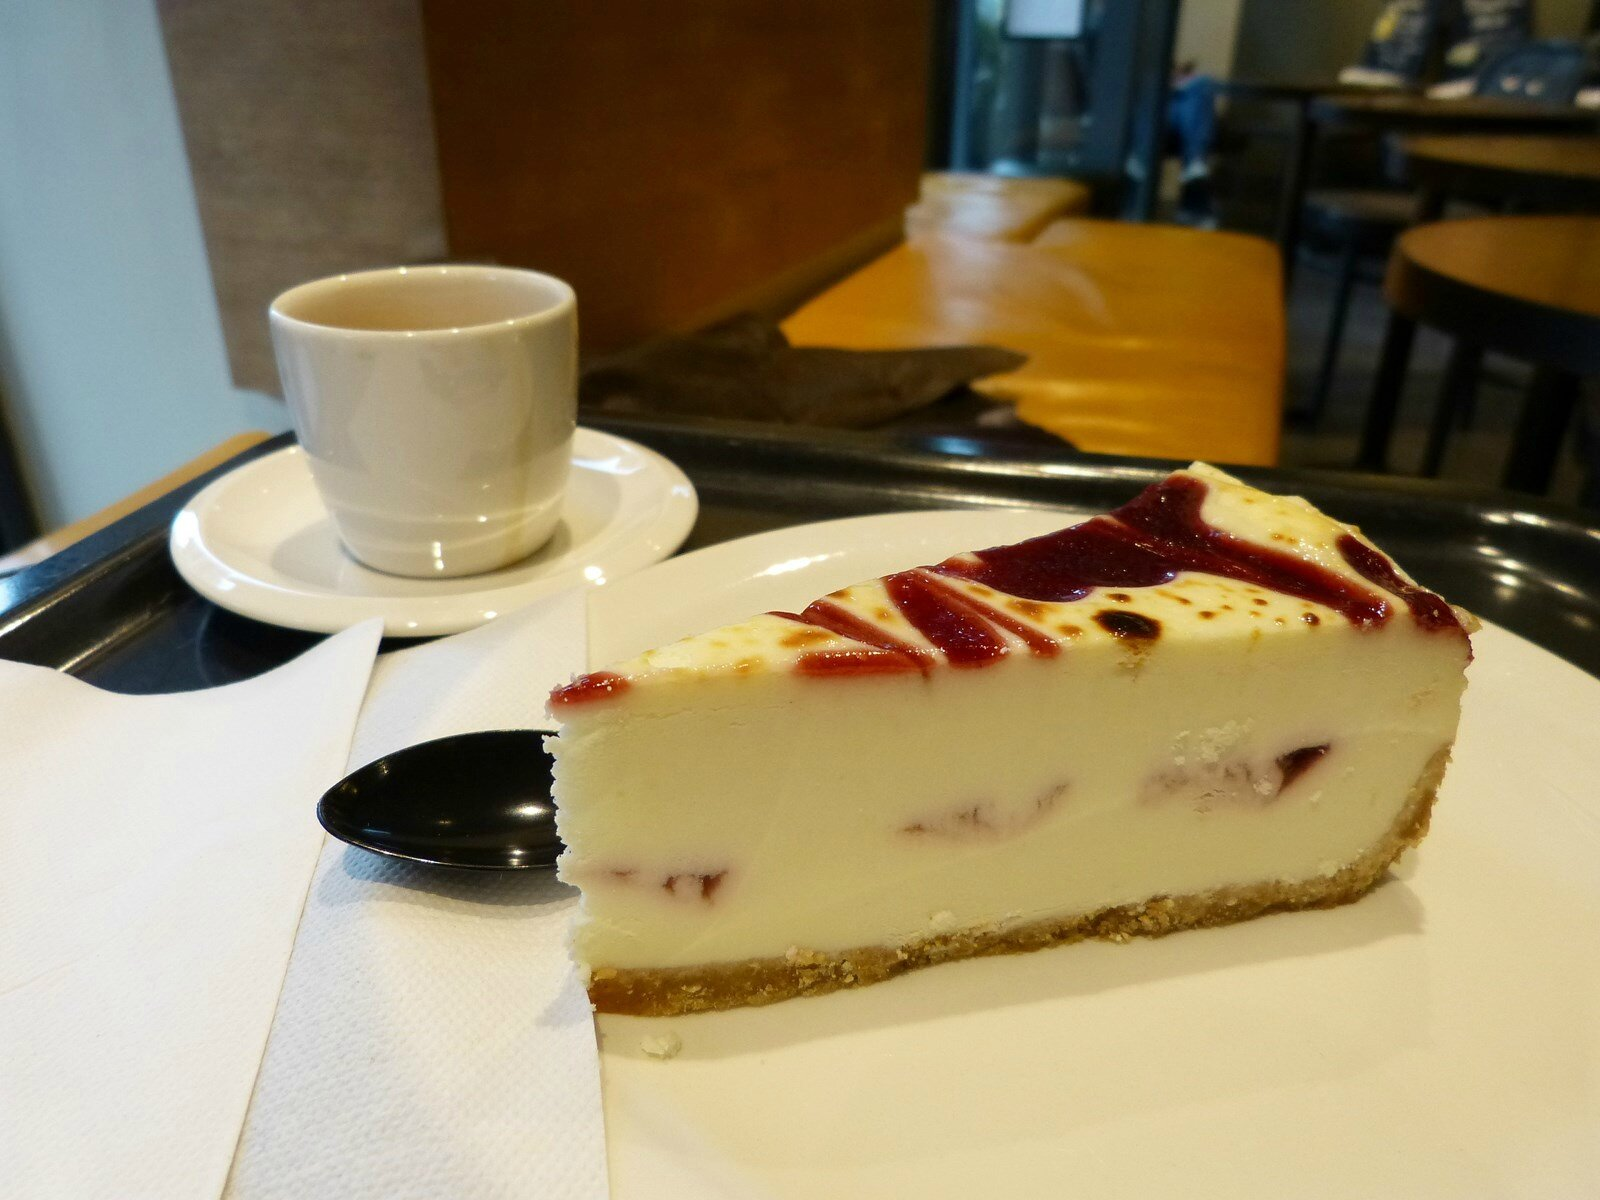 Paris, décembre 2013, cheesecake Starbucks Café ! Miam !